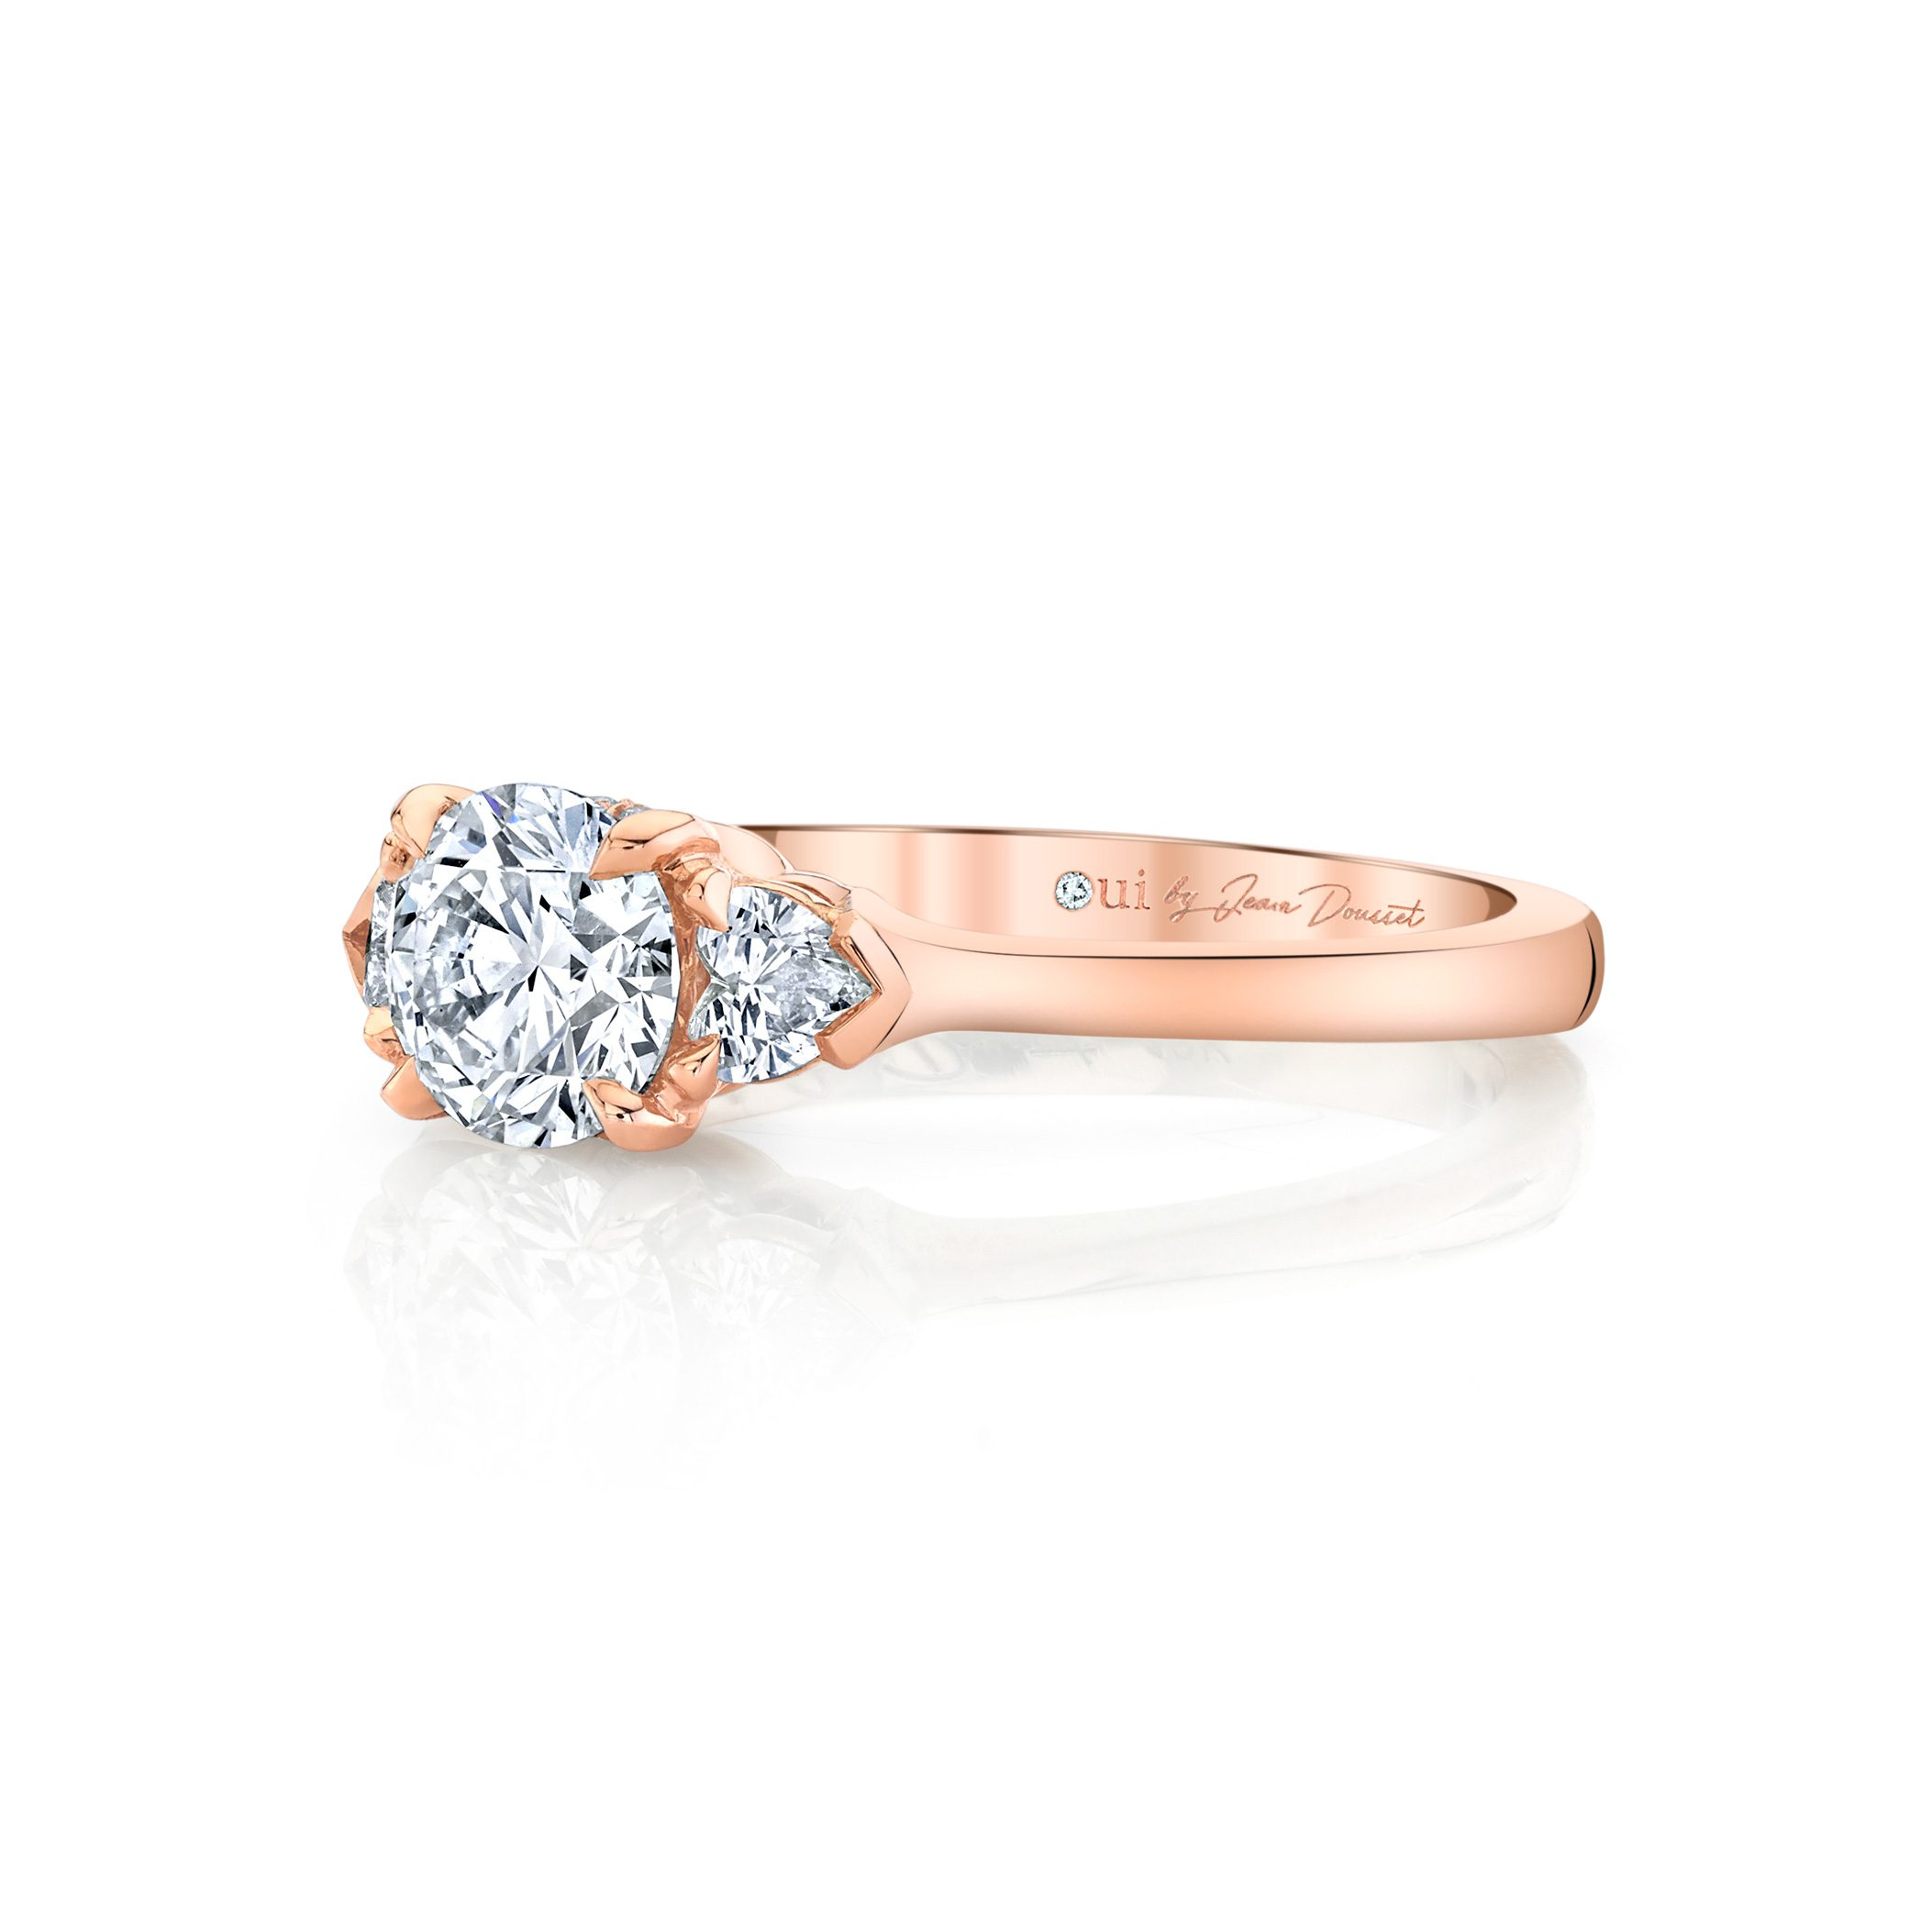 Claire Round Brilliant Three Stone Engagement Ring with heart-shaped diamond side stones in 18k Rose Gold Side View by Oui by Jean Dousset